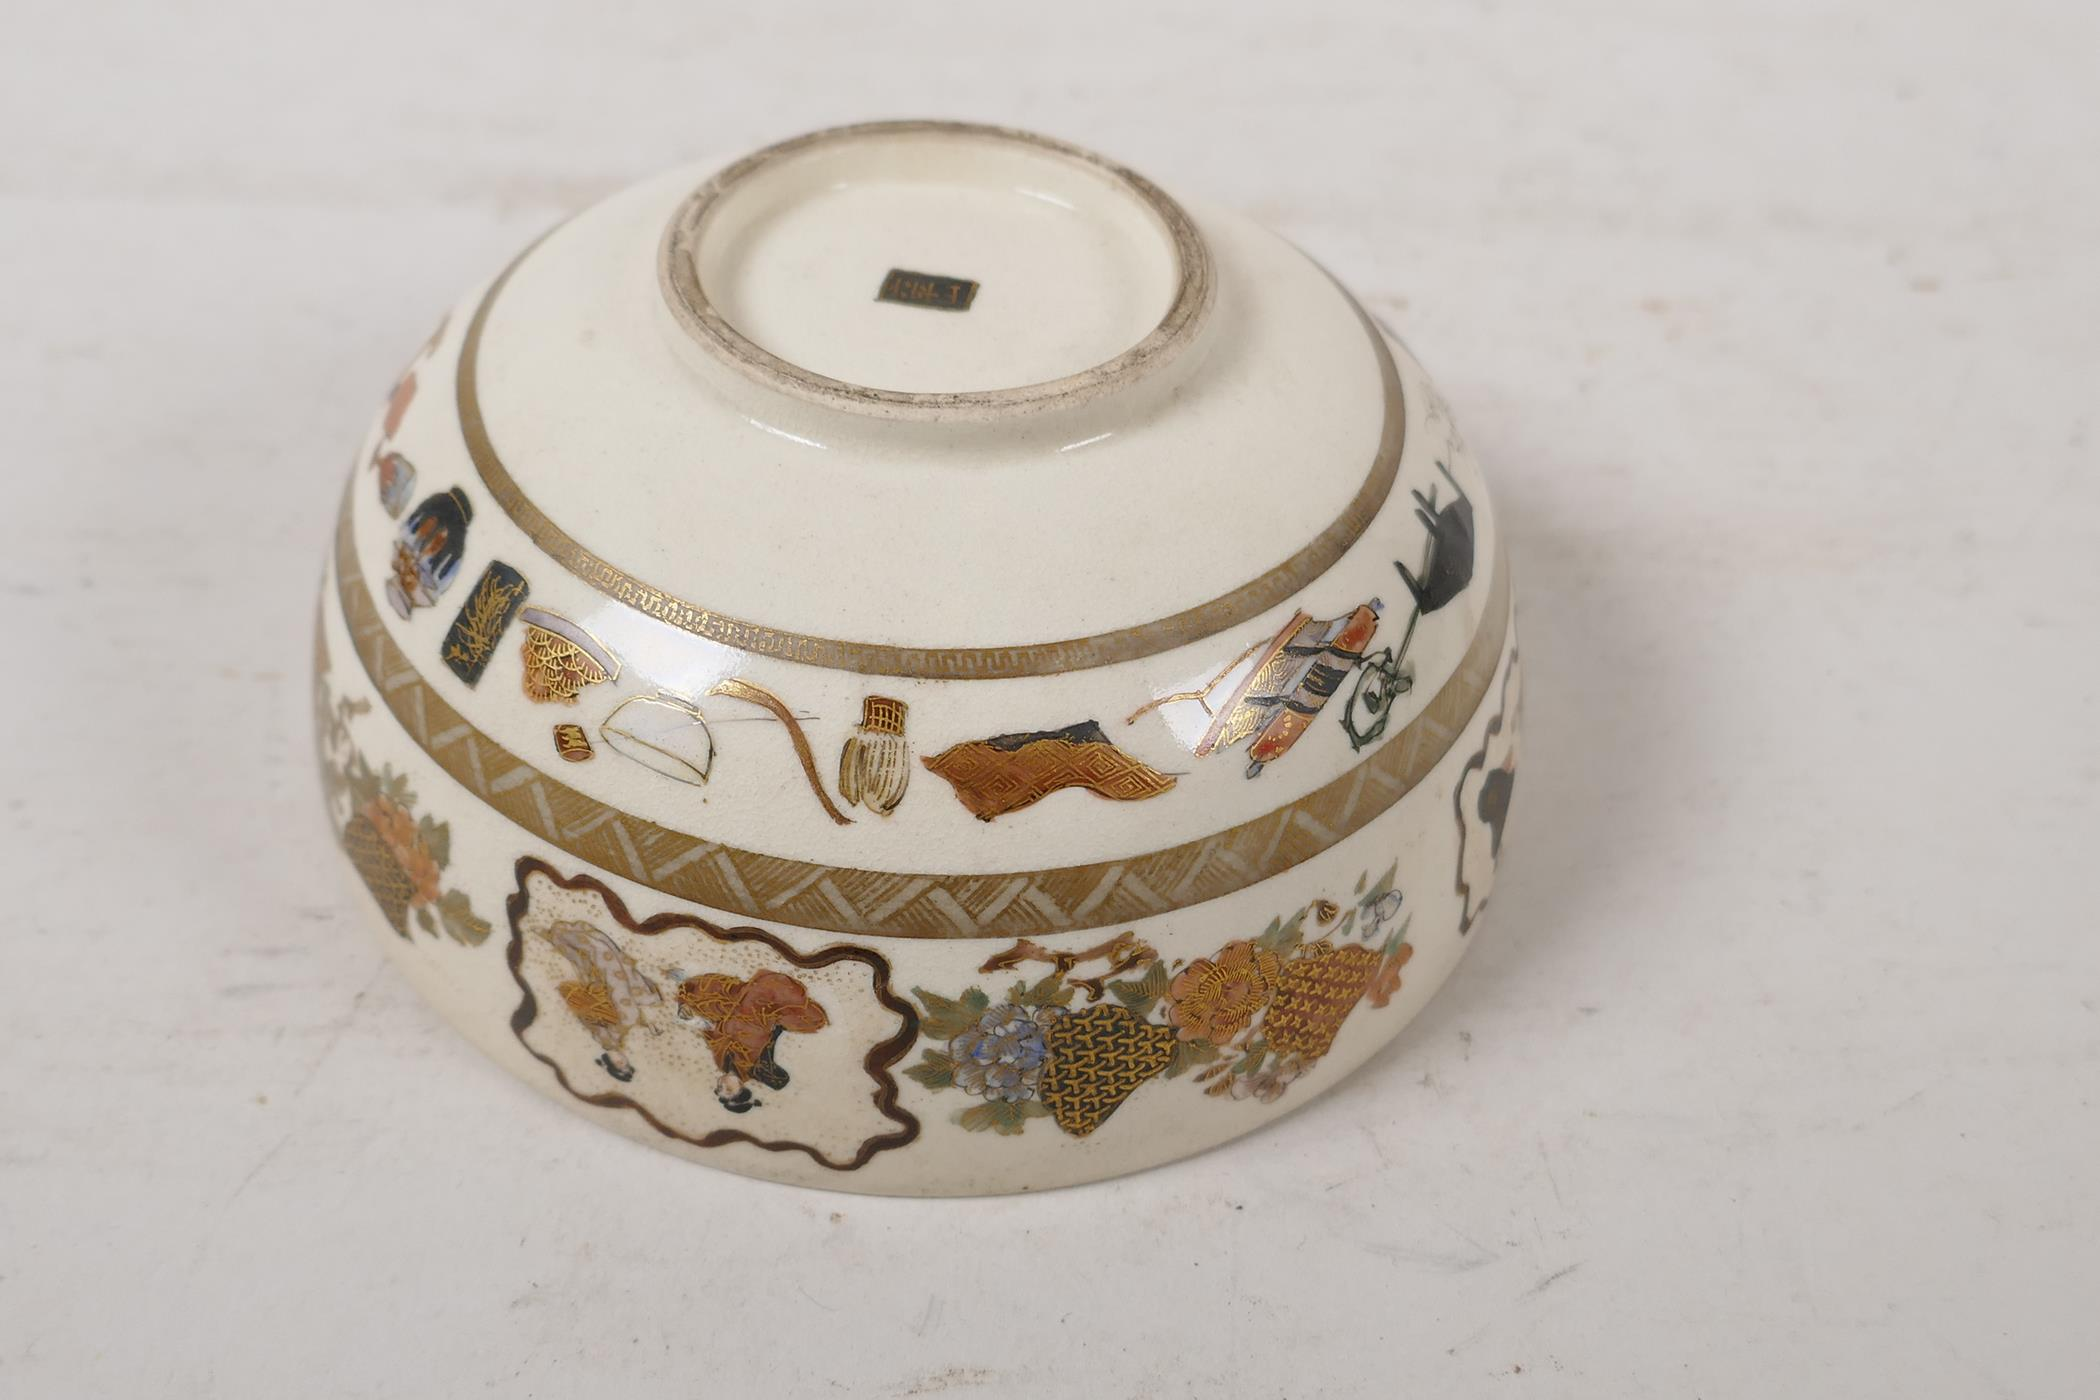 A Japanese meiji period satsuma bowl, decorated with children to the interior, the exterior with - Image 7 of 8